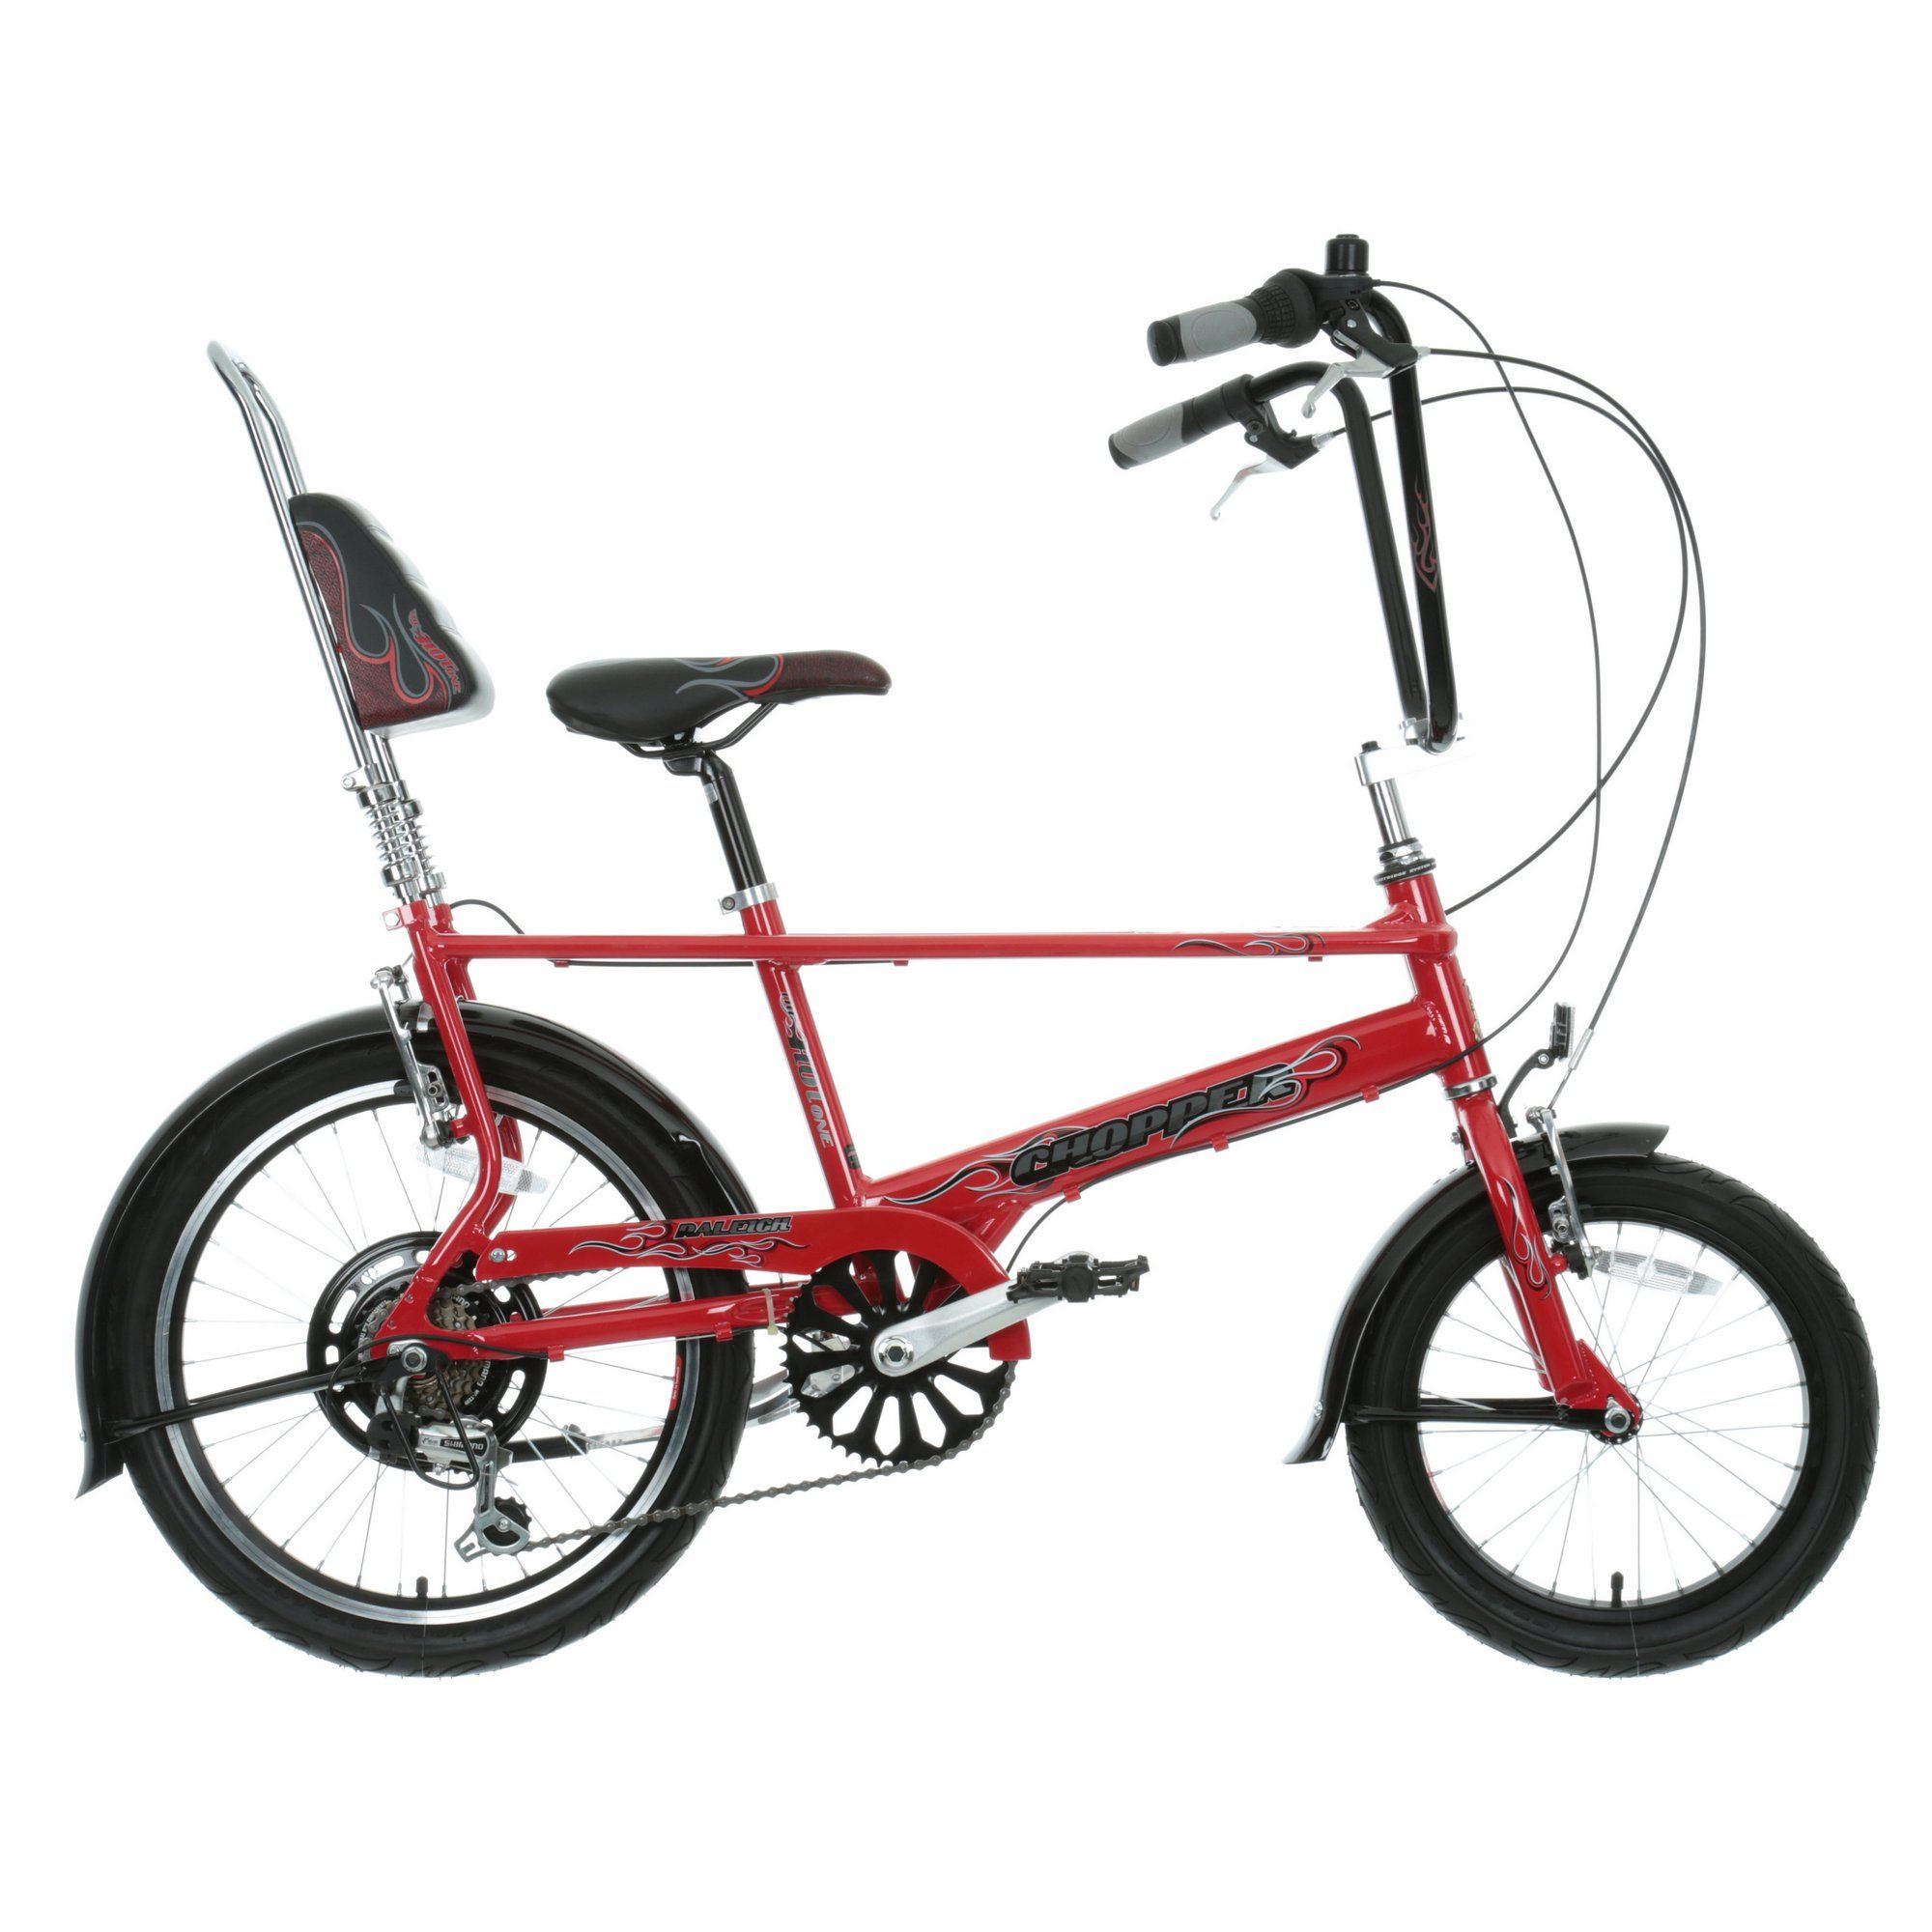 Halfords Raleigh Chopper Bike Chopper Bike Kids Bike Boy Bike